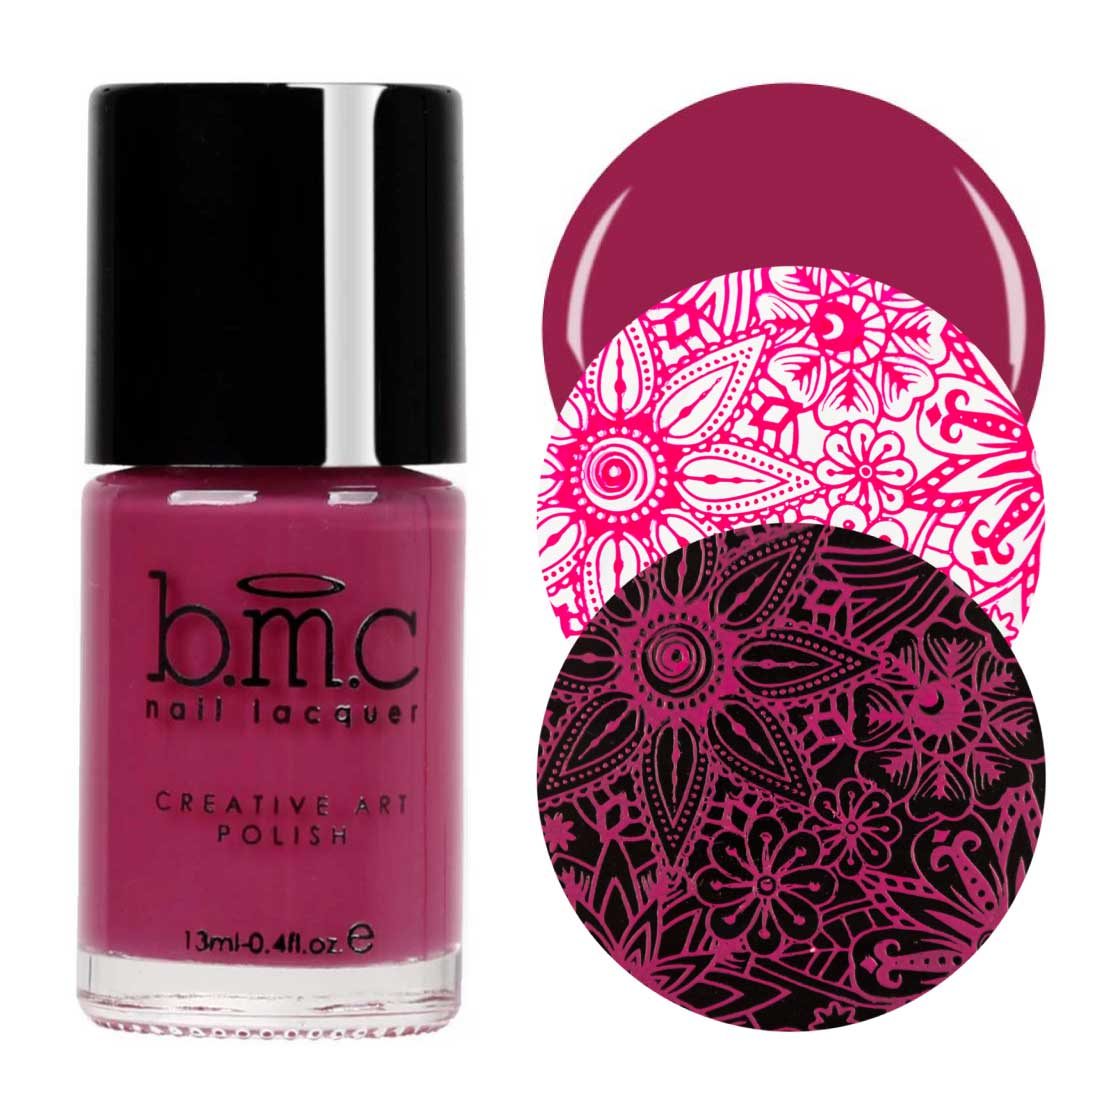 BMC Bright and Bold Nail Art Stamping Polishes - Winter Solstice Collection